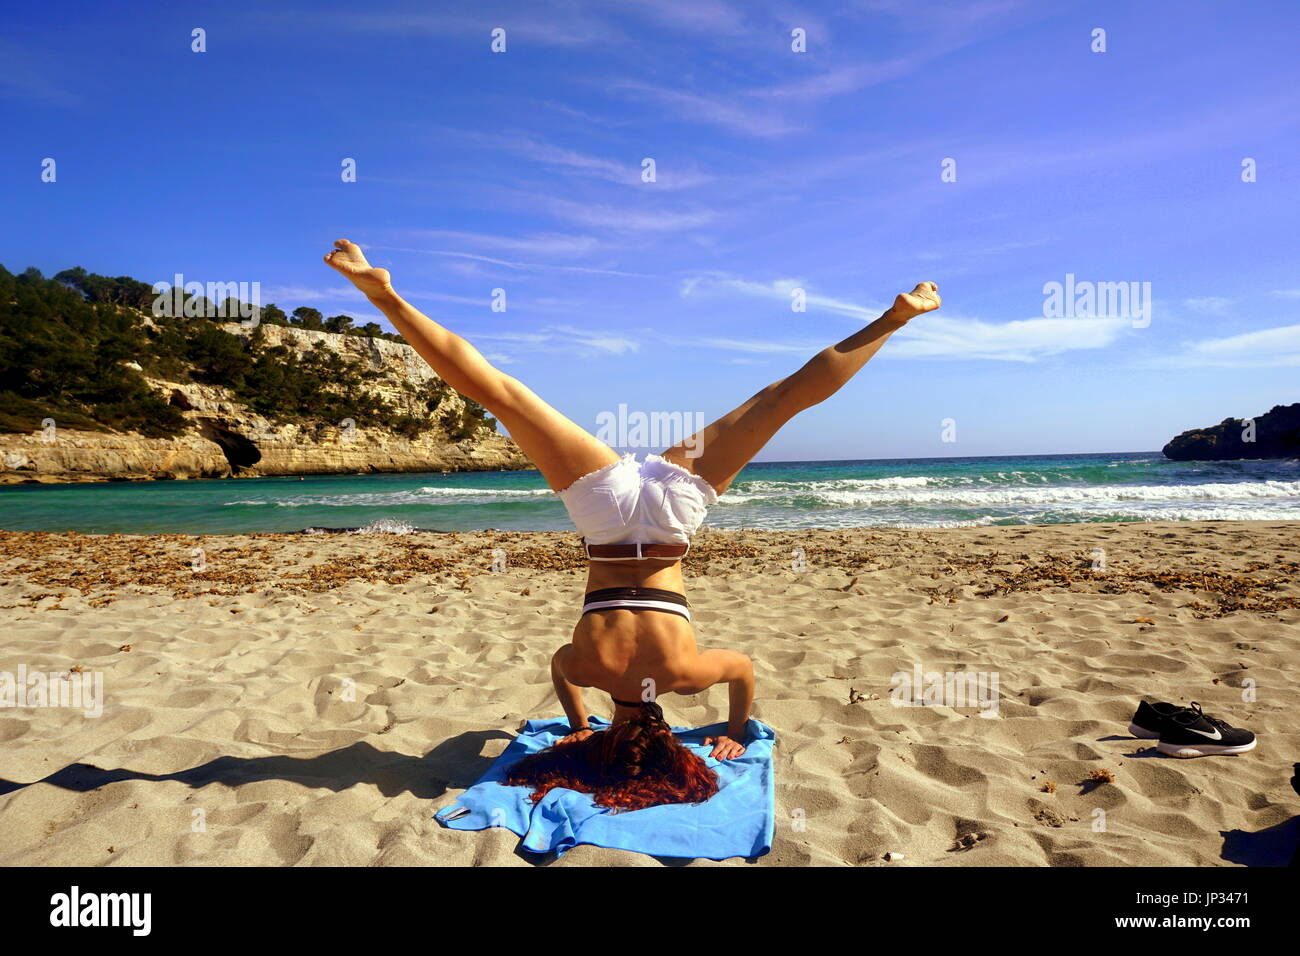 Lifestyle/ Passion for Yoga/ Professional blogger - Stock Image